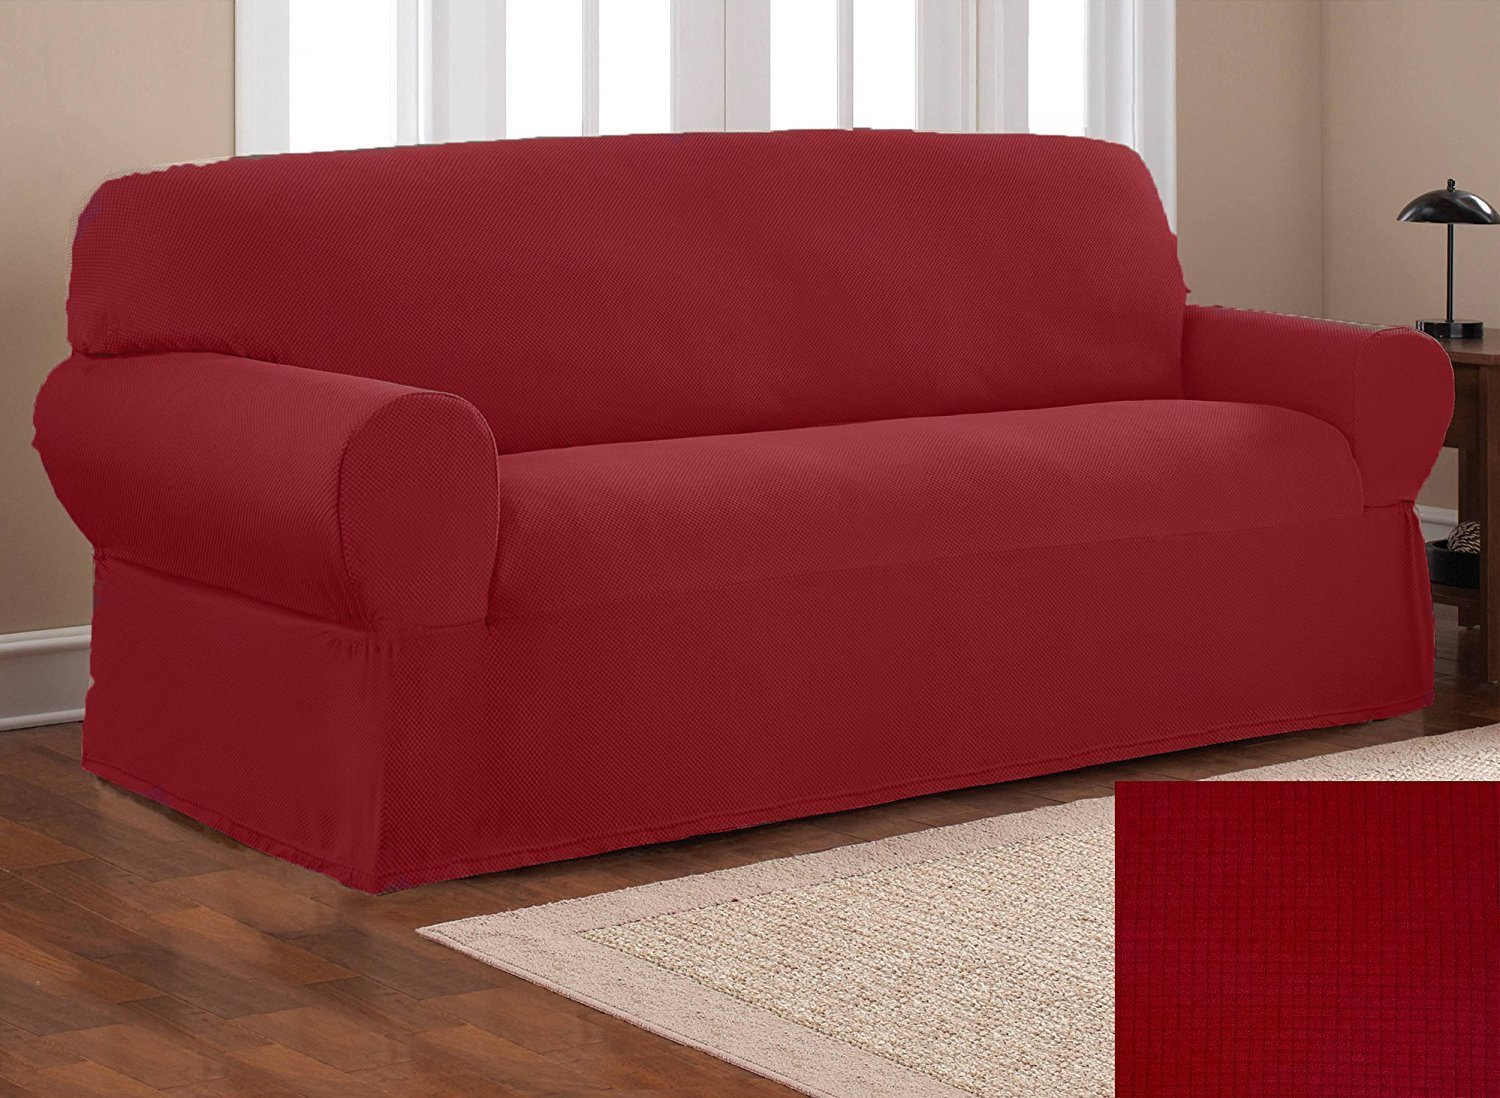 Elegant Home One piece Stretch to Fit Sofa Cover Furniture Couch Slipcover # Stella (Burgundy)